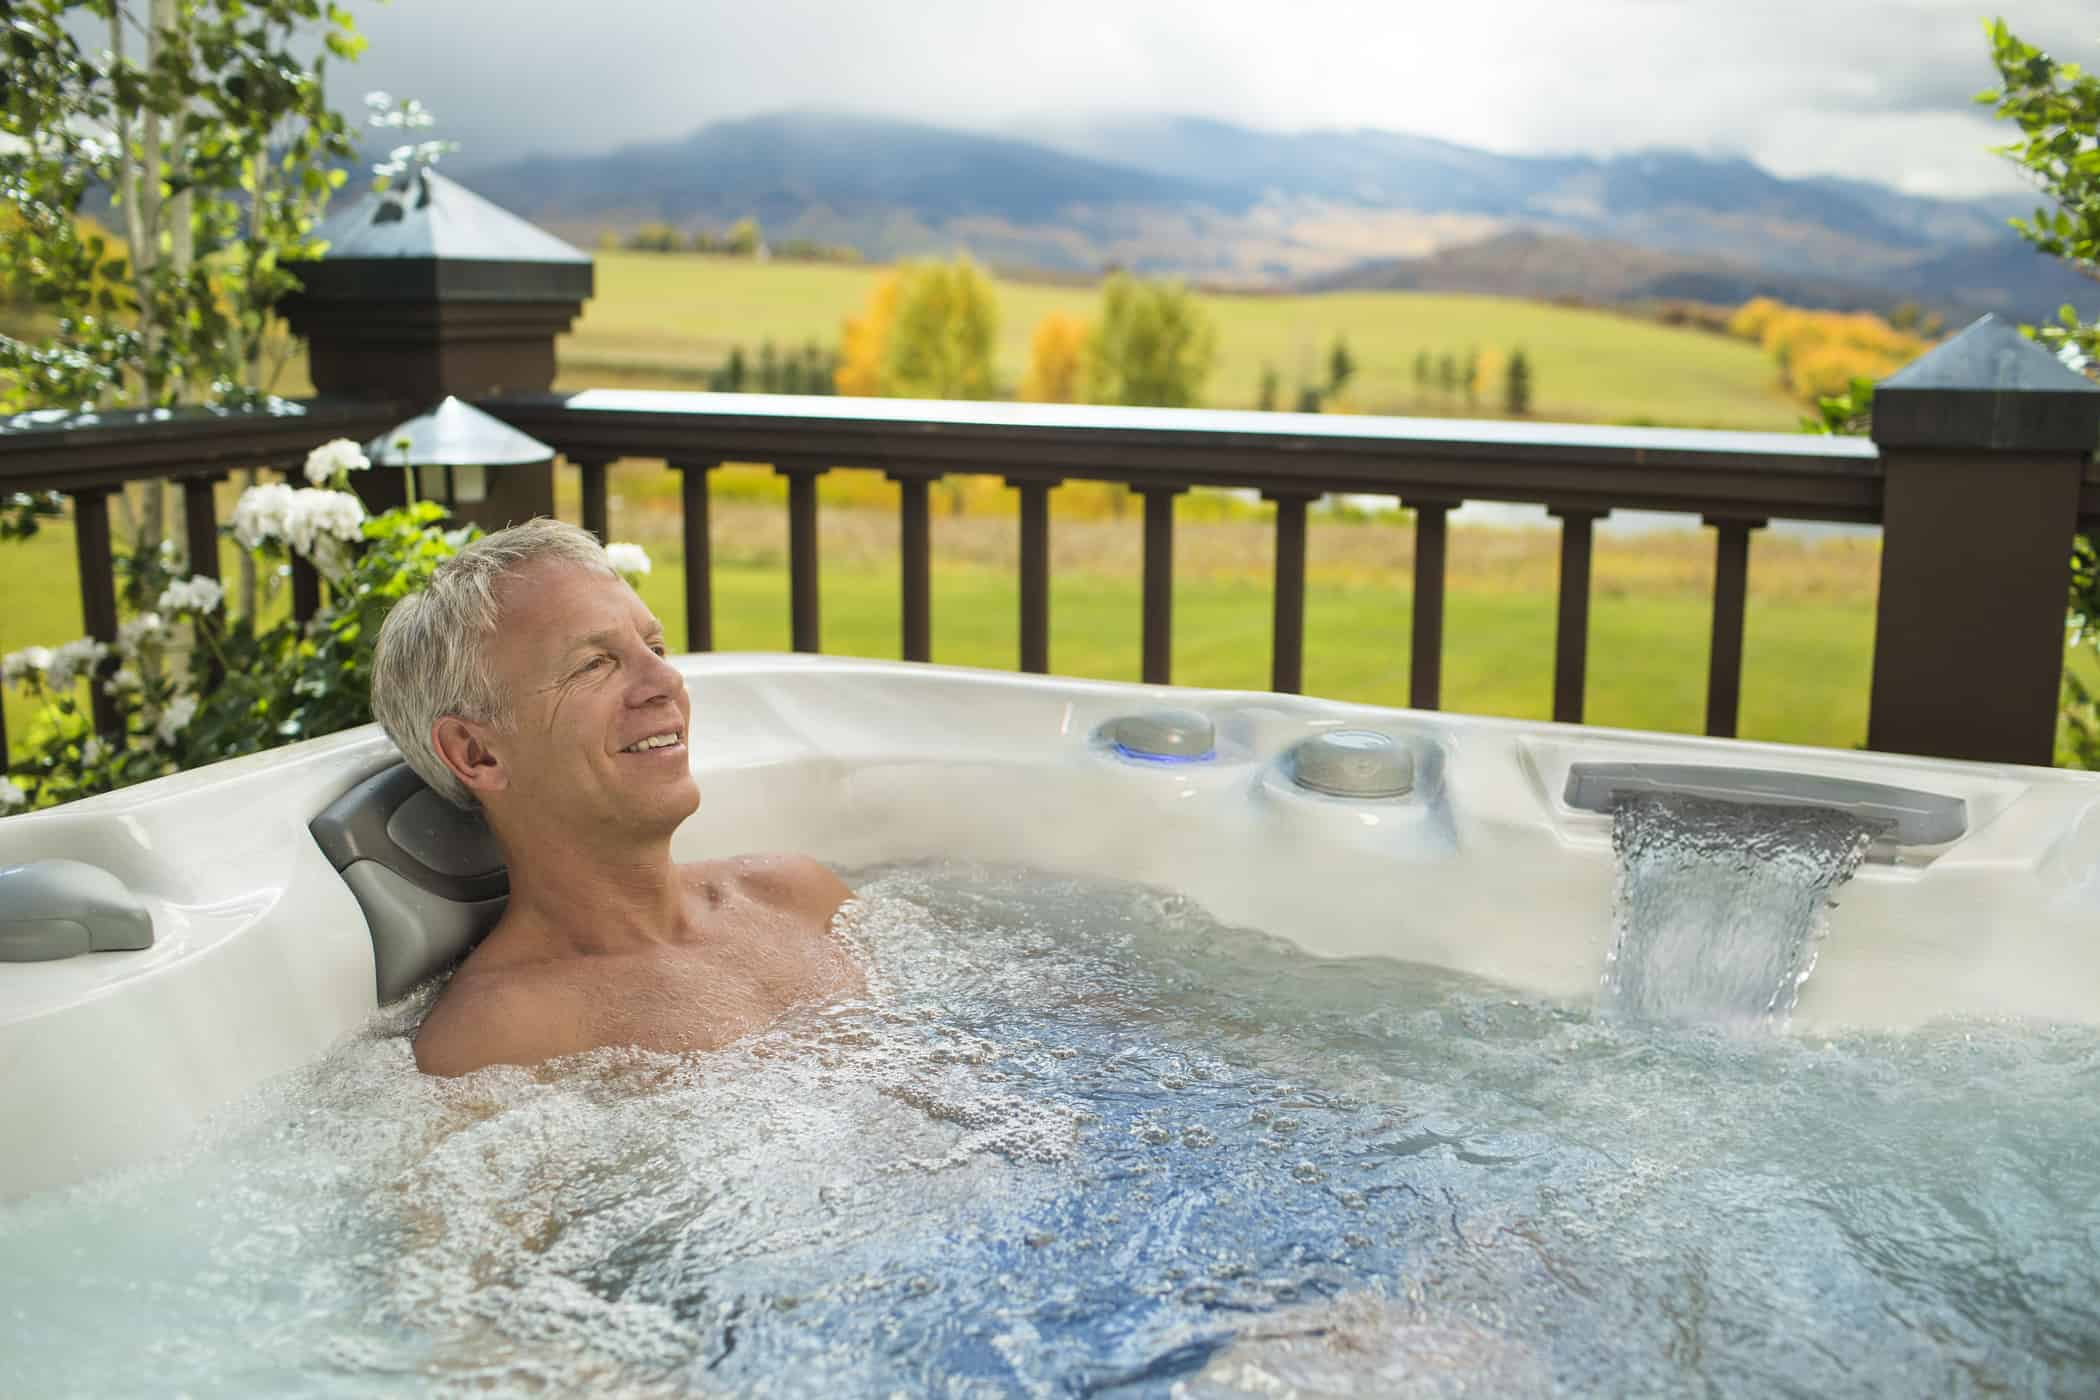 Man relaxing in hot tub.